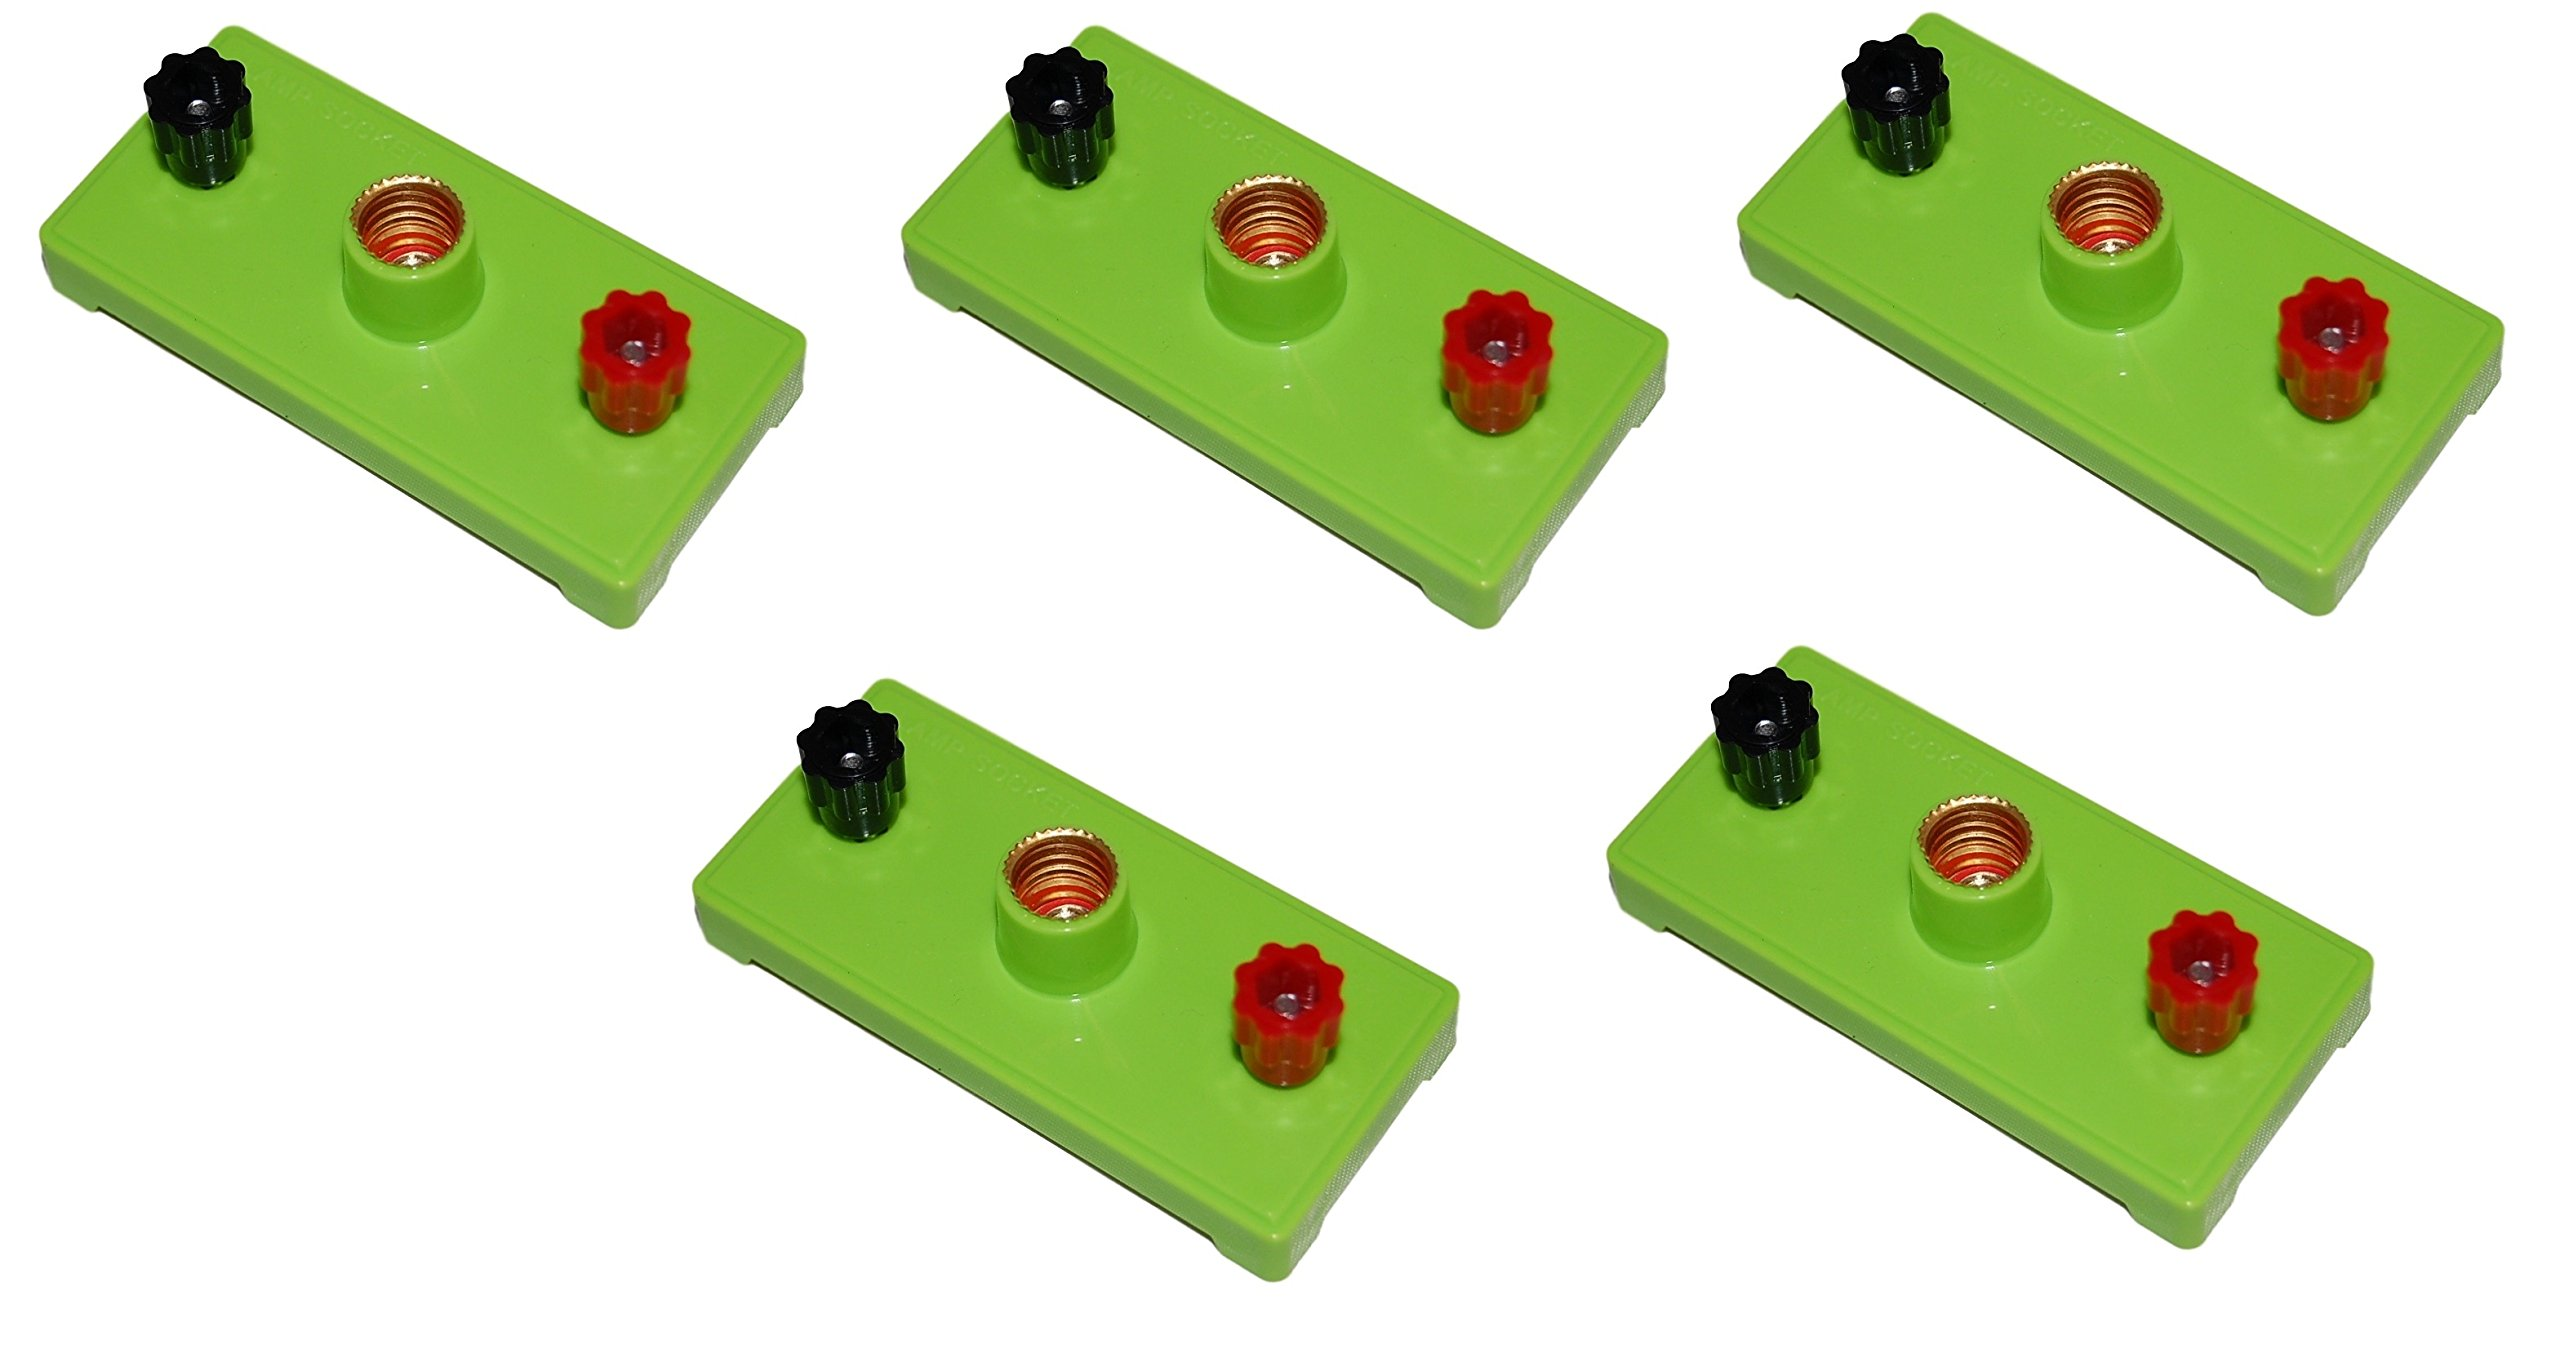 Cheap Simple Pcb Circuits Find Deals On Line At Elenco Snap Green Alternative Energy From Get Quotations Sci Supply Mini Light Bulb Holder E10 Platinum Series With Binding Posts For